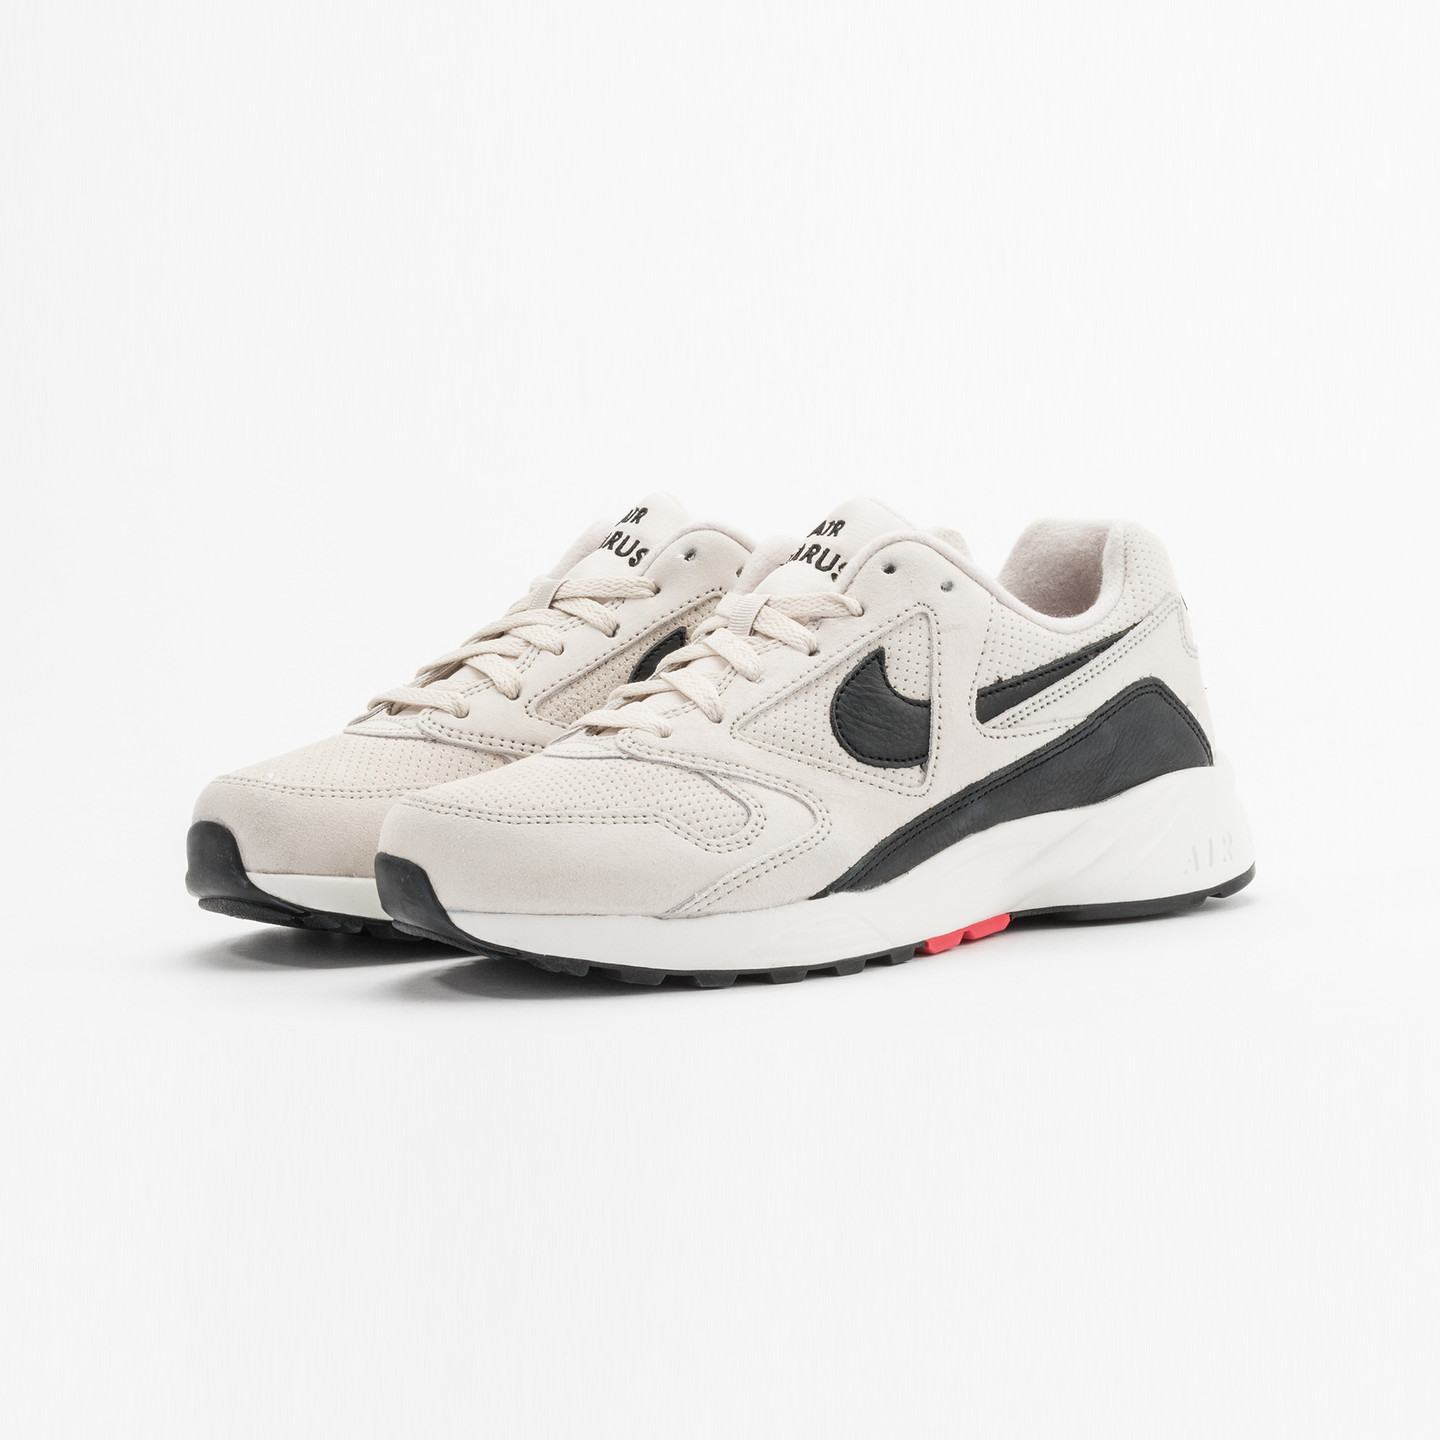 Nike Air Icarus Extra QS Sail / Black 882019-100-44